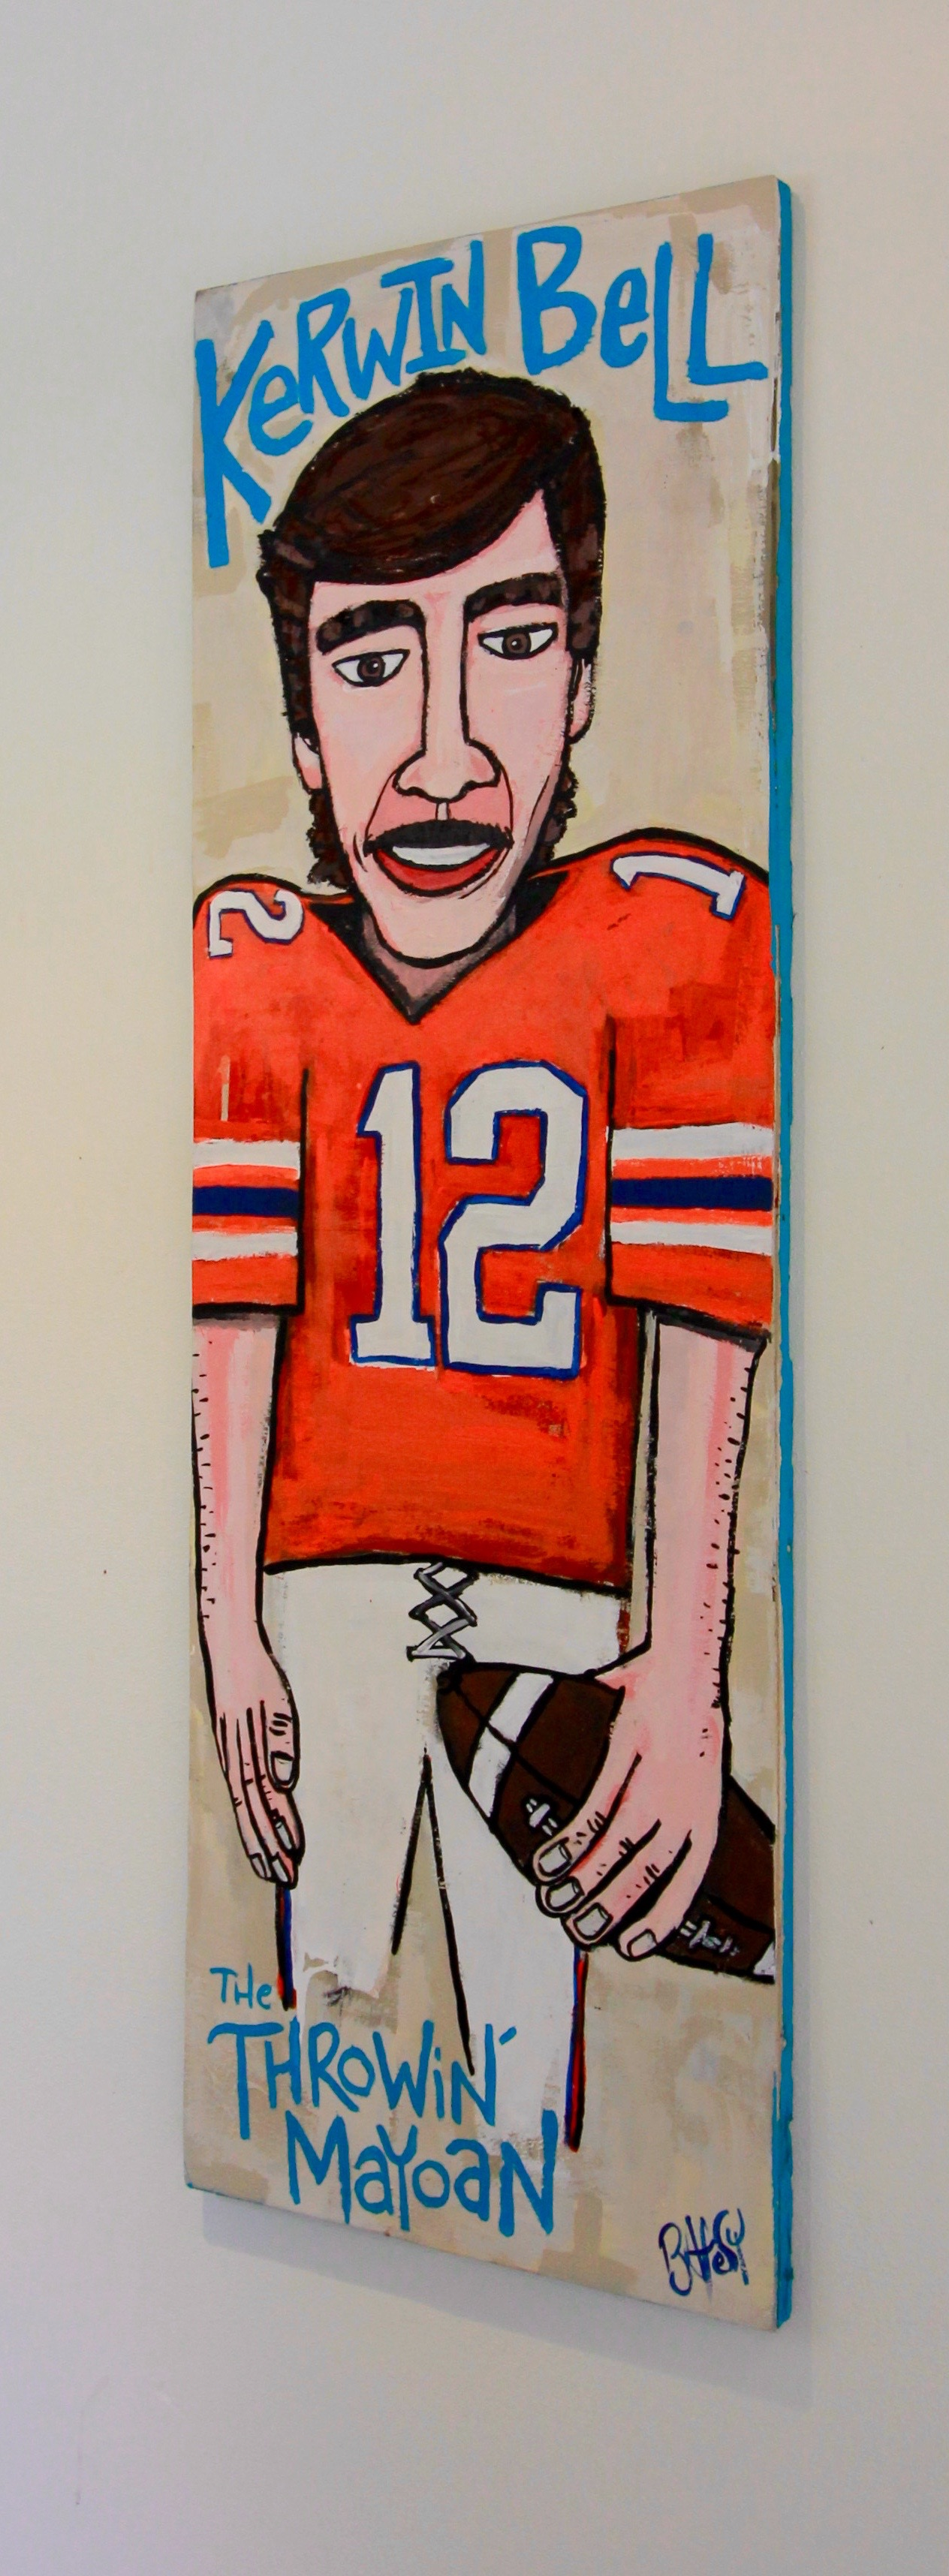 """The Throwin' Mayoan - Kerwin Bell / 16.5""""x48"""" / Commissioned / SOLD"""